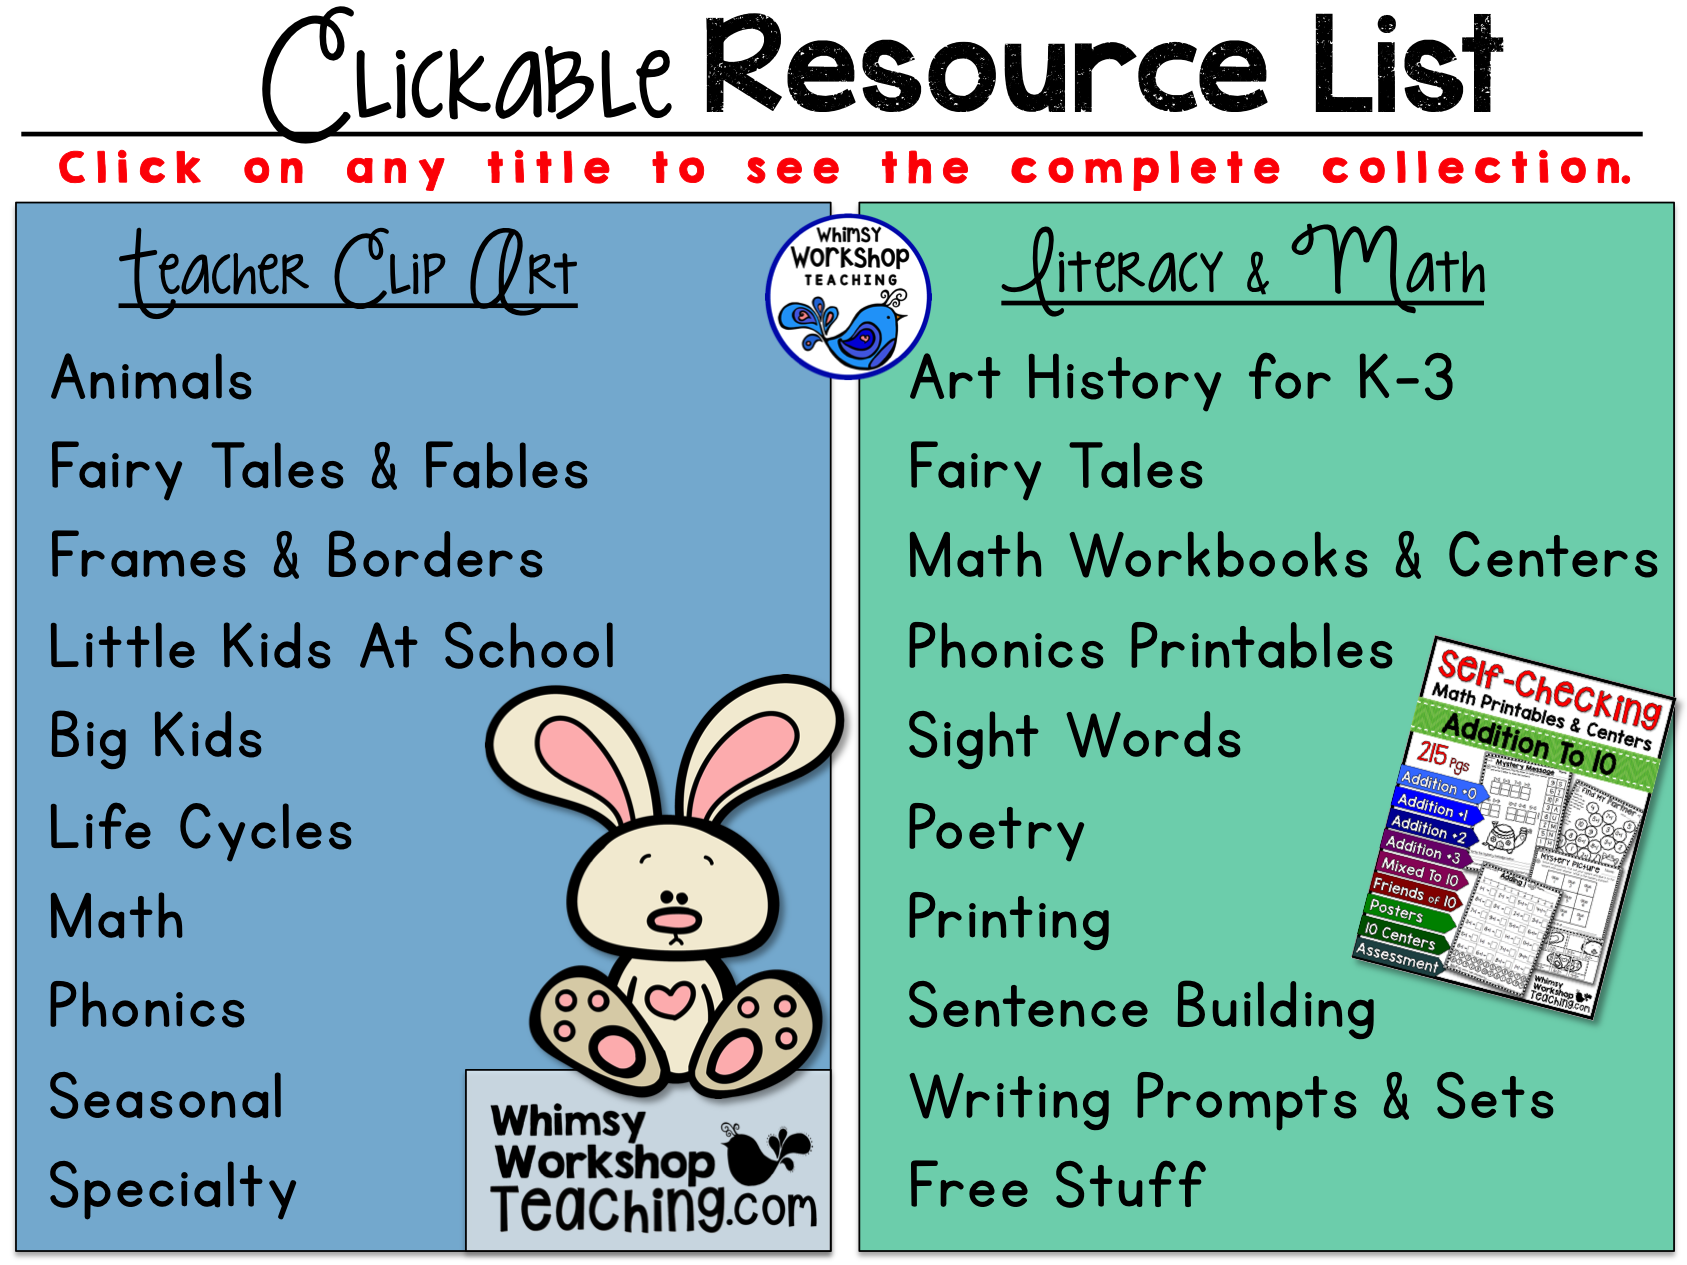 Clickable Resource List for all Whimsy Workshop Teaching products ...